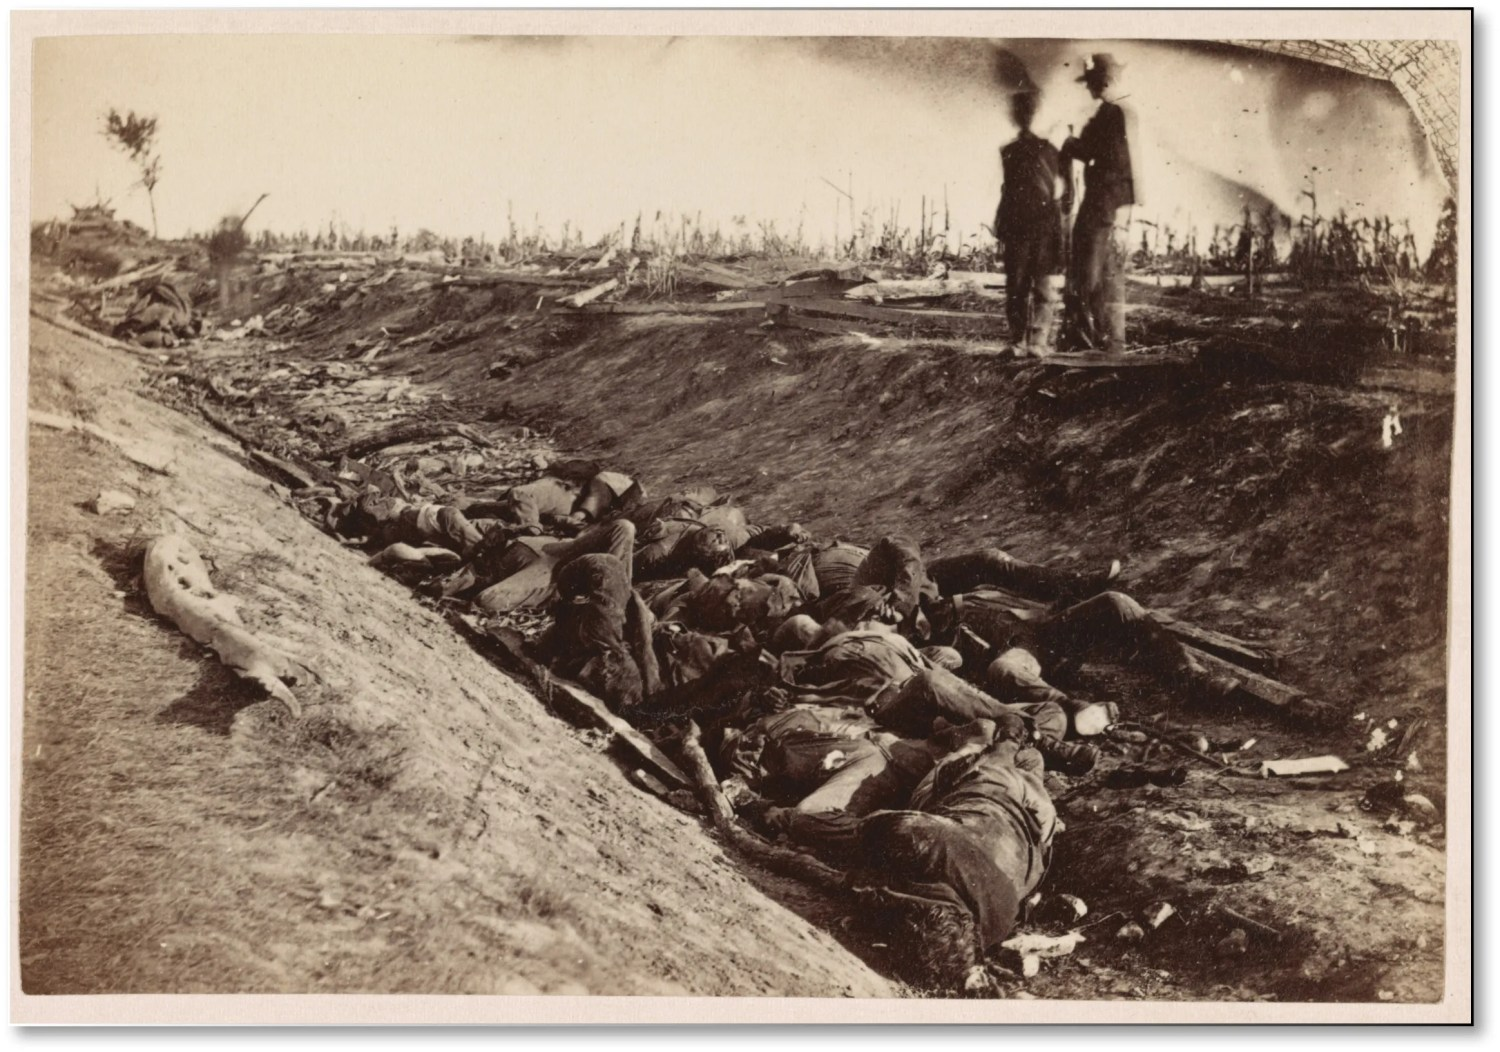 ABOVE Confederate dead in a sunken lane on the battlefield of Antietam grim testimony to America's bloodiest day. Lee was outnumbered two to one, but McClellan failed to coordinate attacks so as to overwhelm his line. Even so, Lee lost 25% of his effectives and was forced to